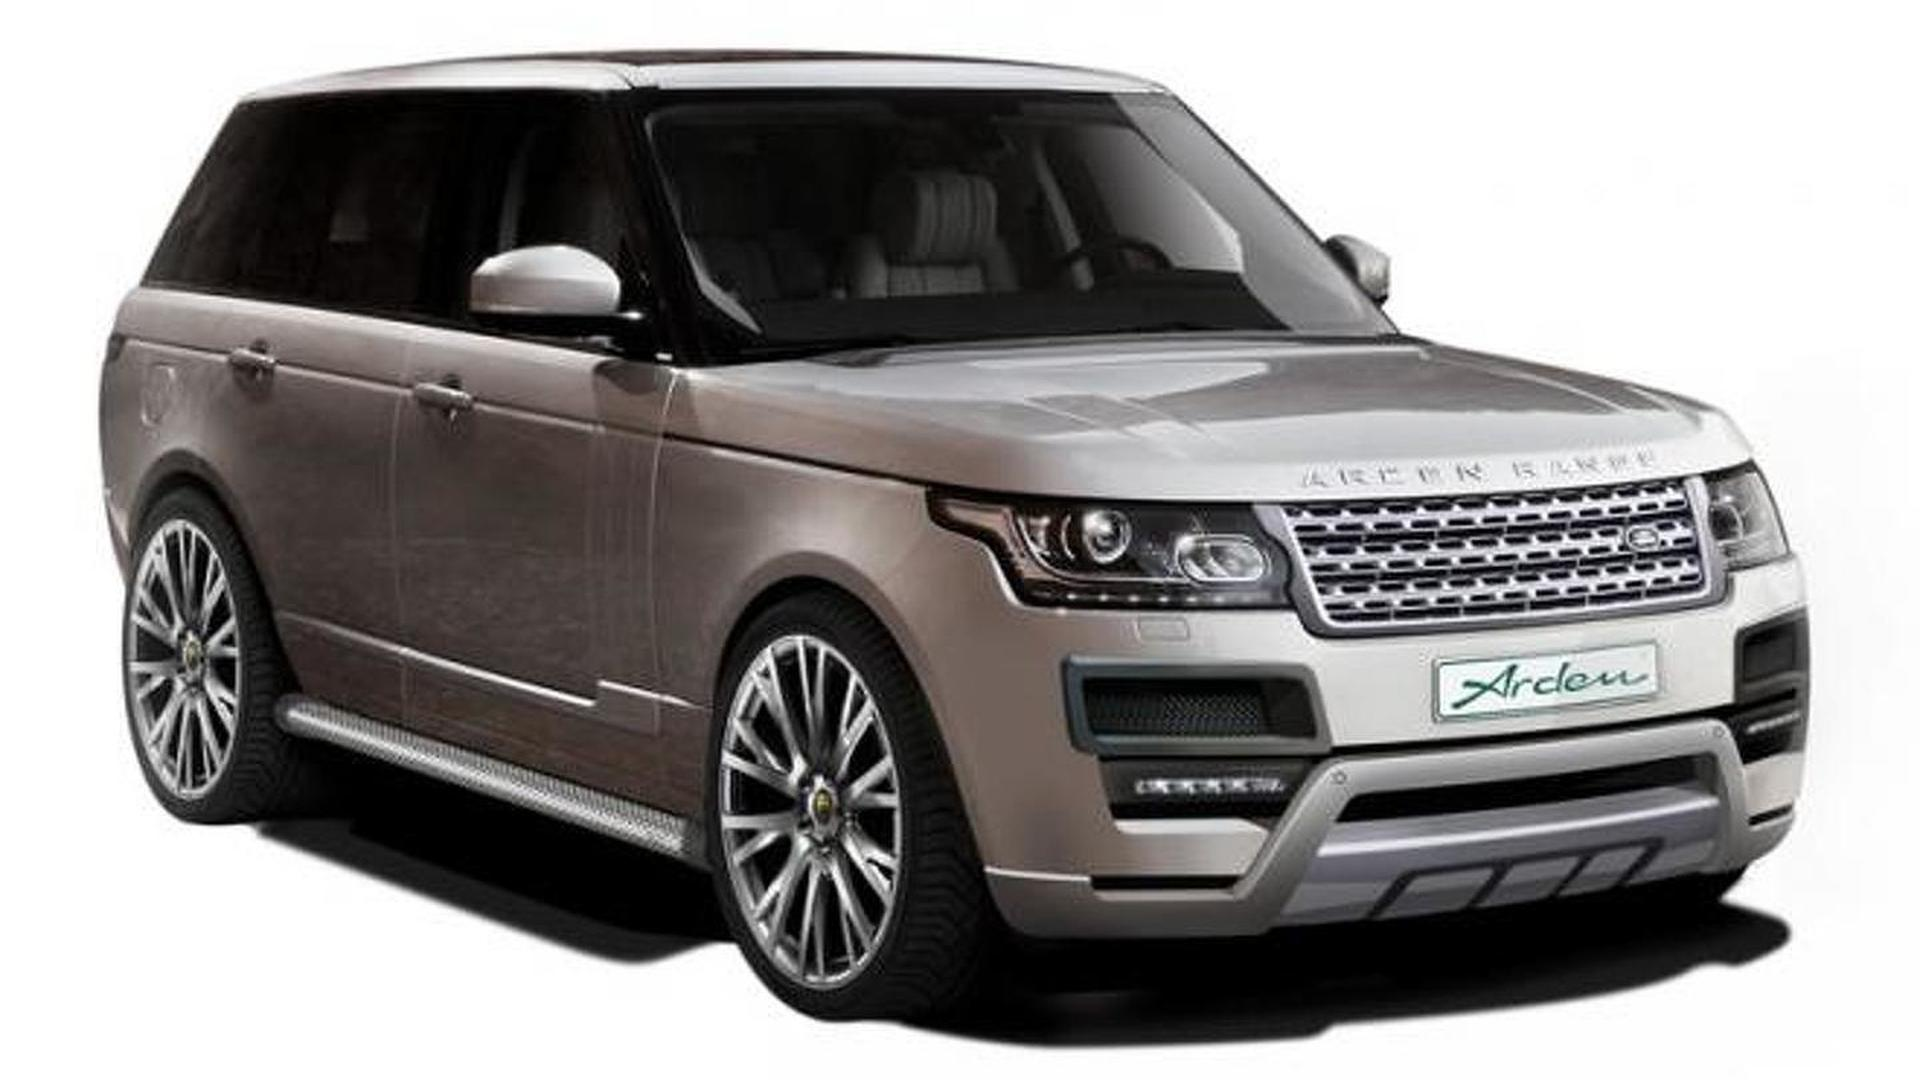 Ranger Rover AR9 by Arden brings a new body kit